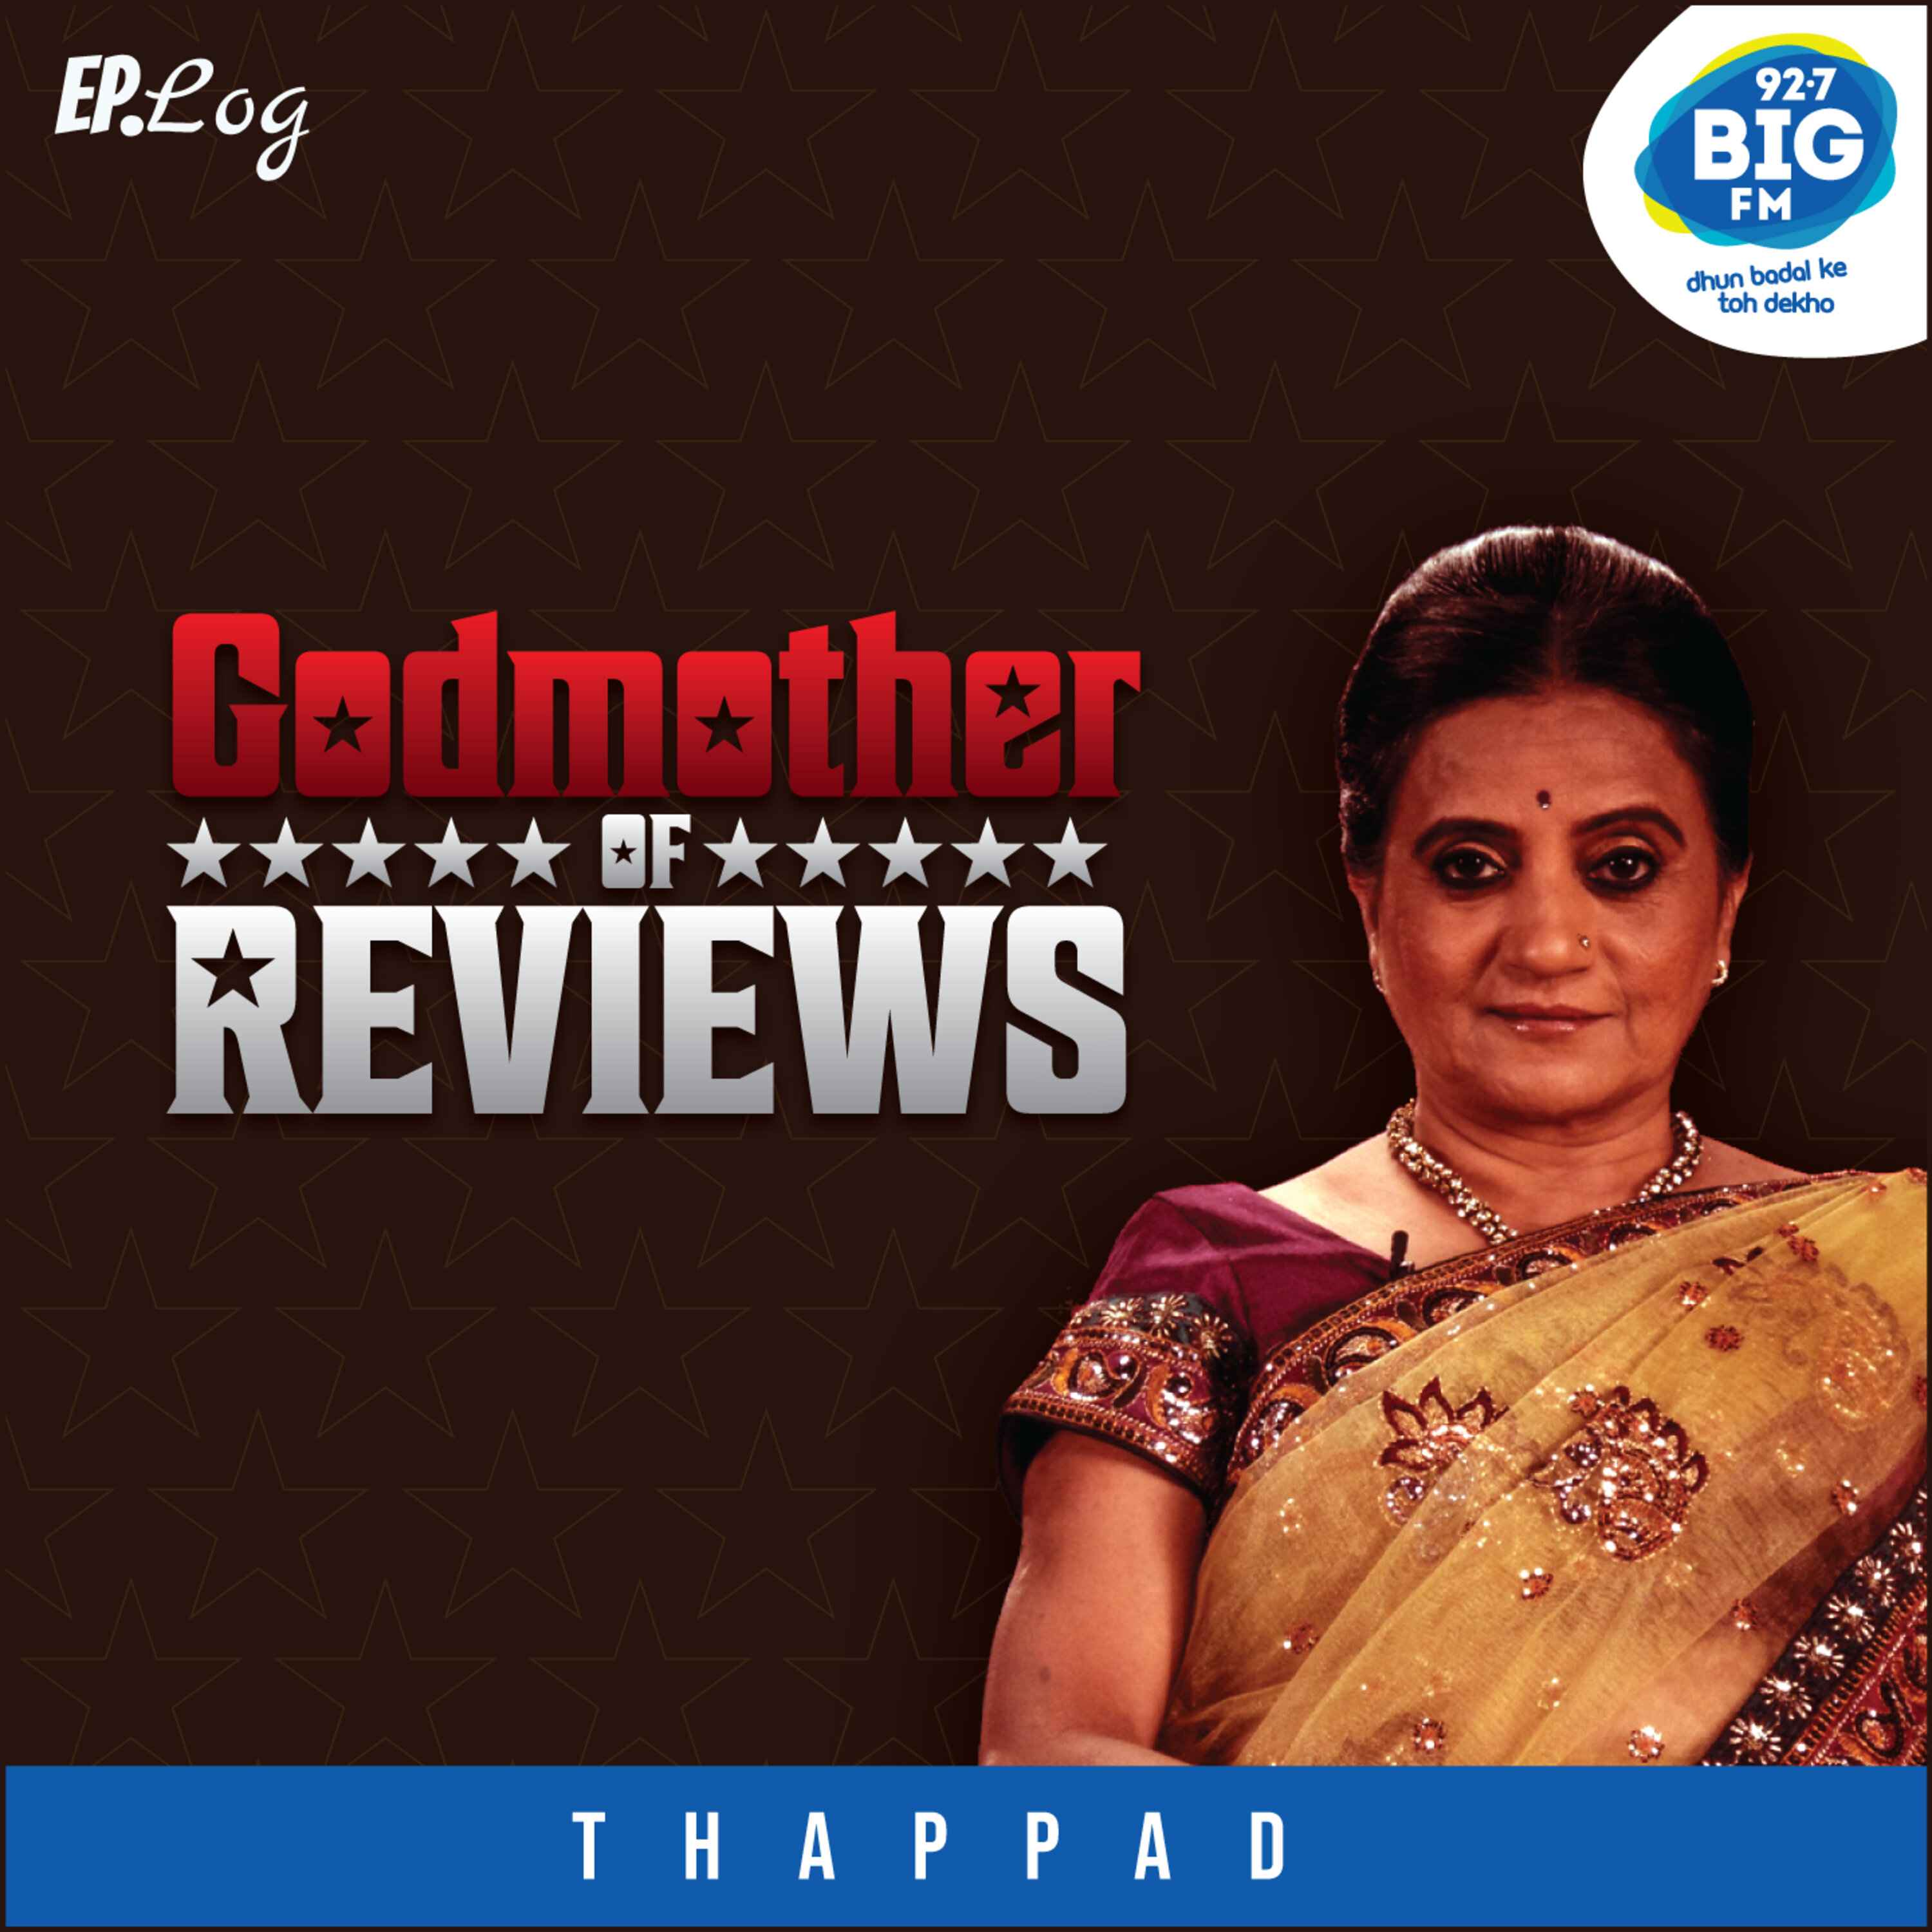 Godmother Of Reviews - Thappad